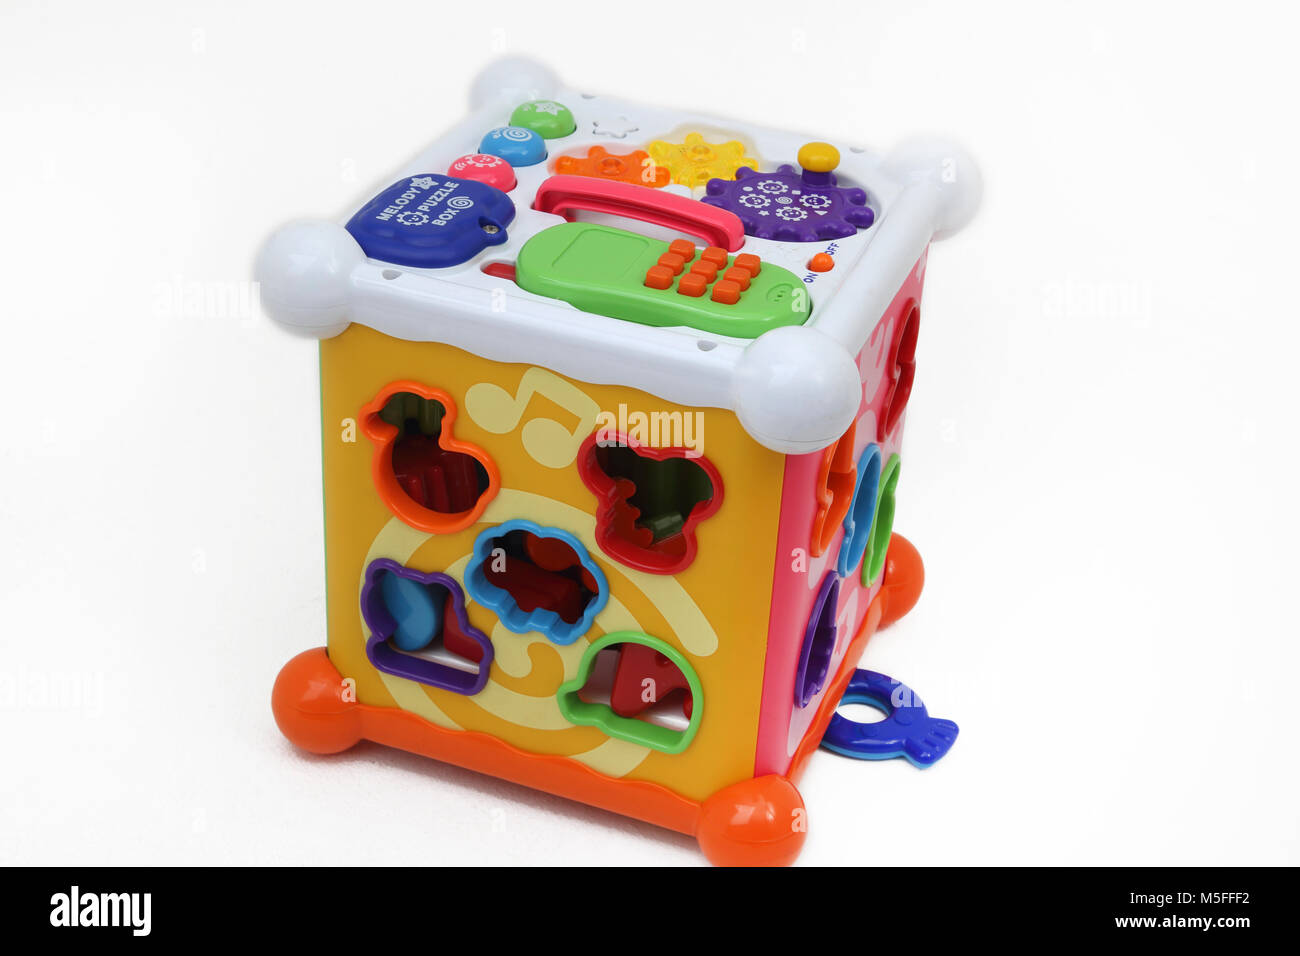 Melody Puzzle Box Educational Toy - Stock Image